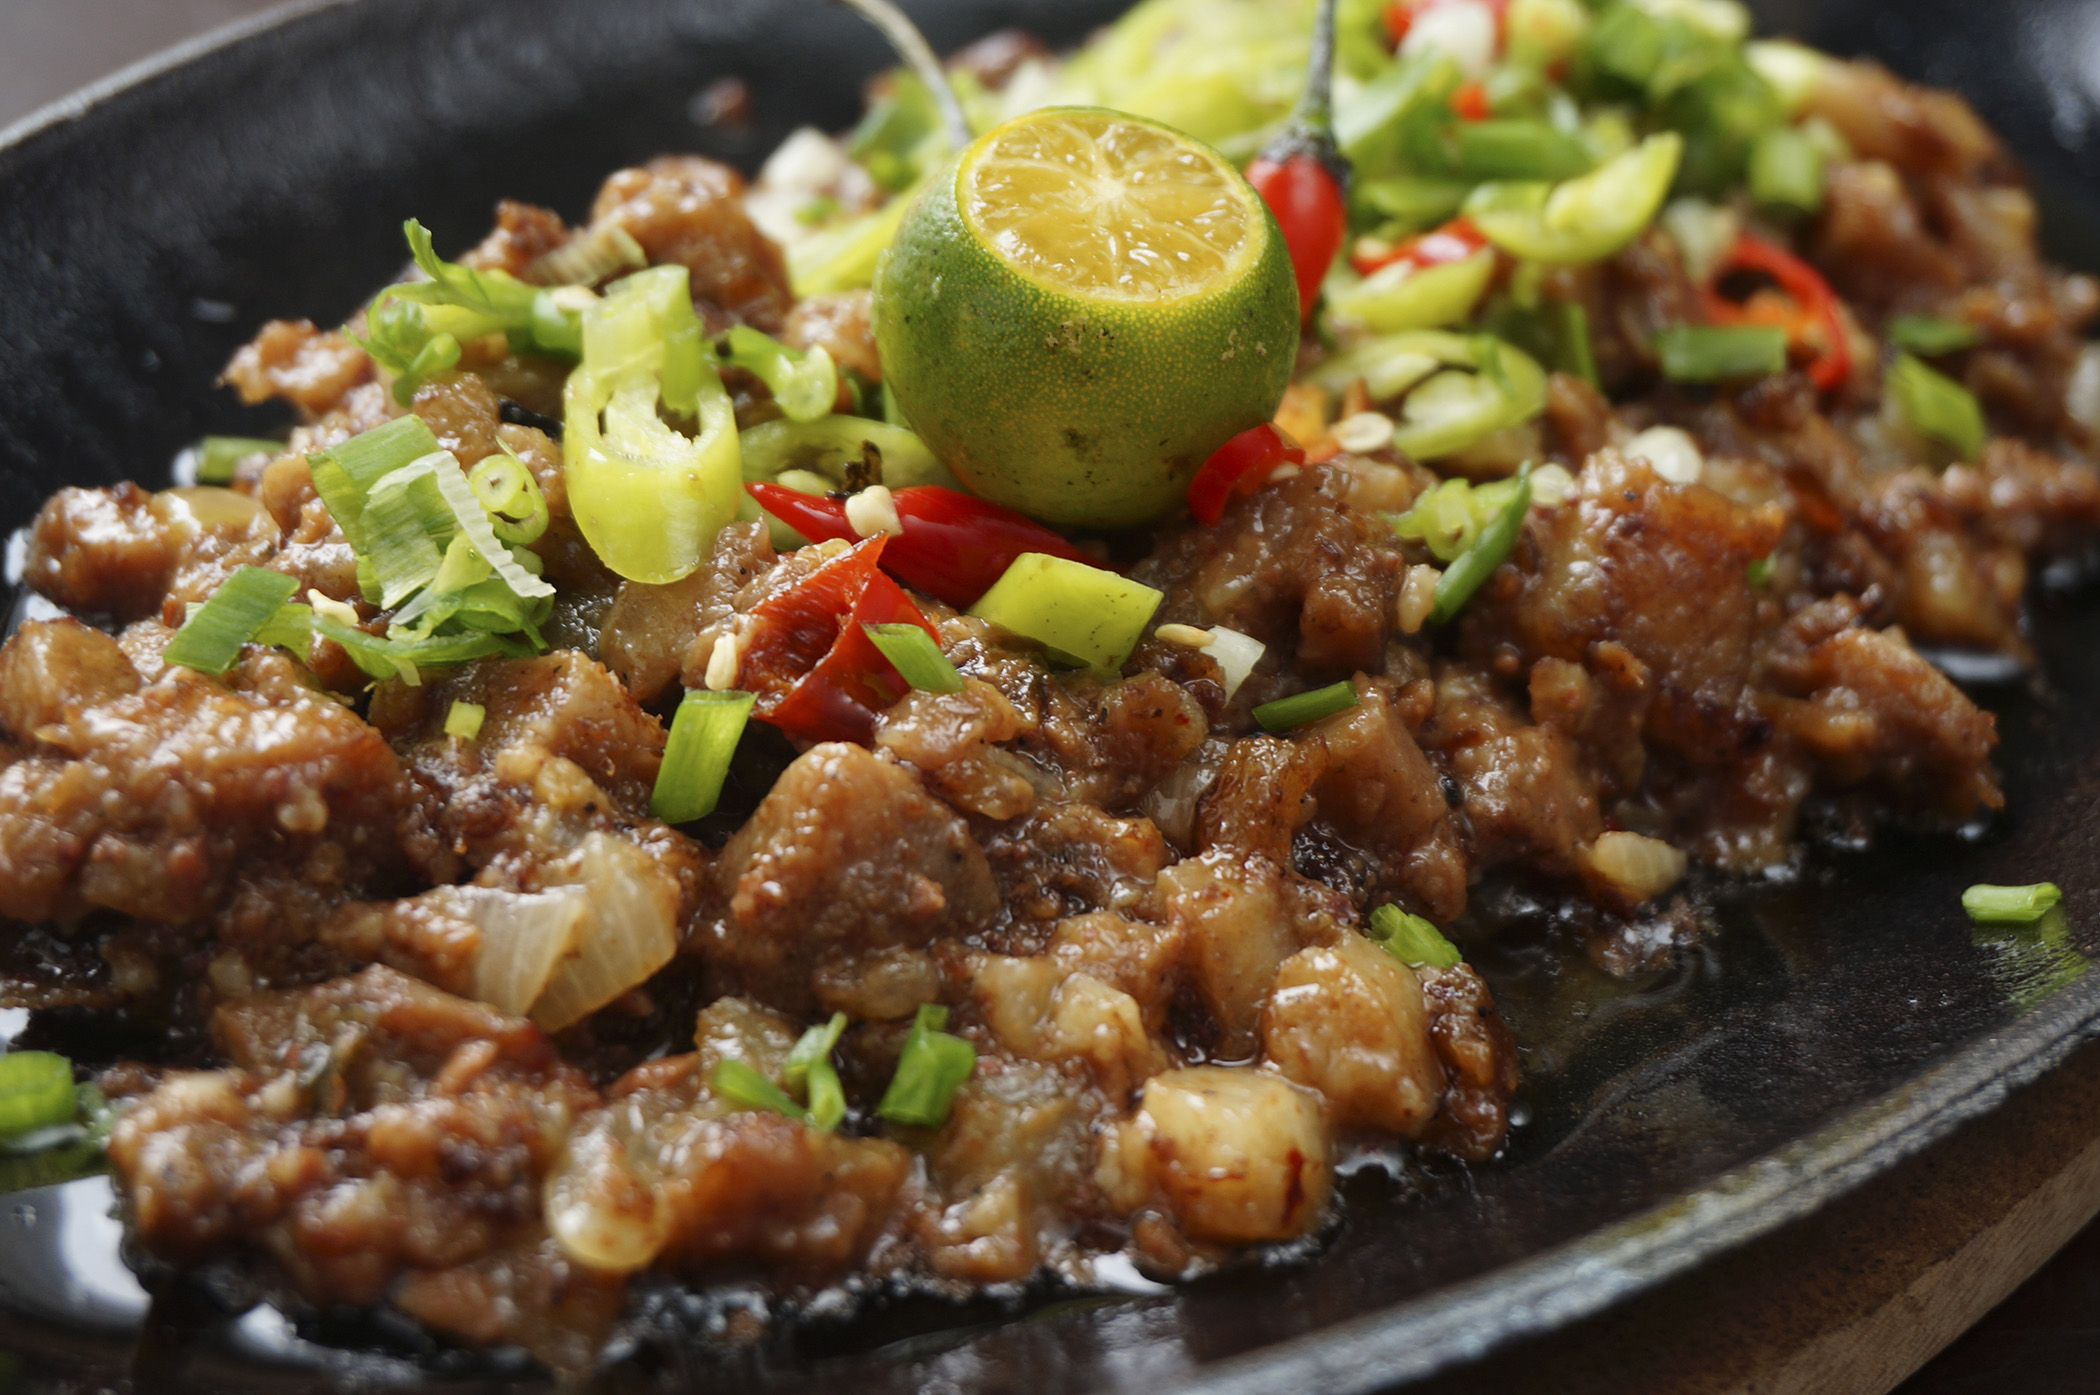 Sumptuous Sisig available at the restobar